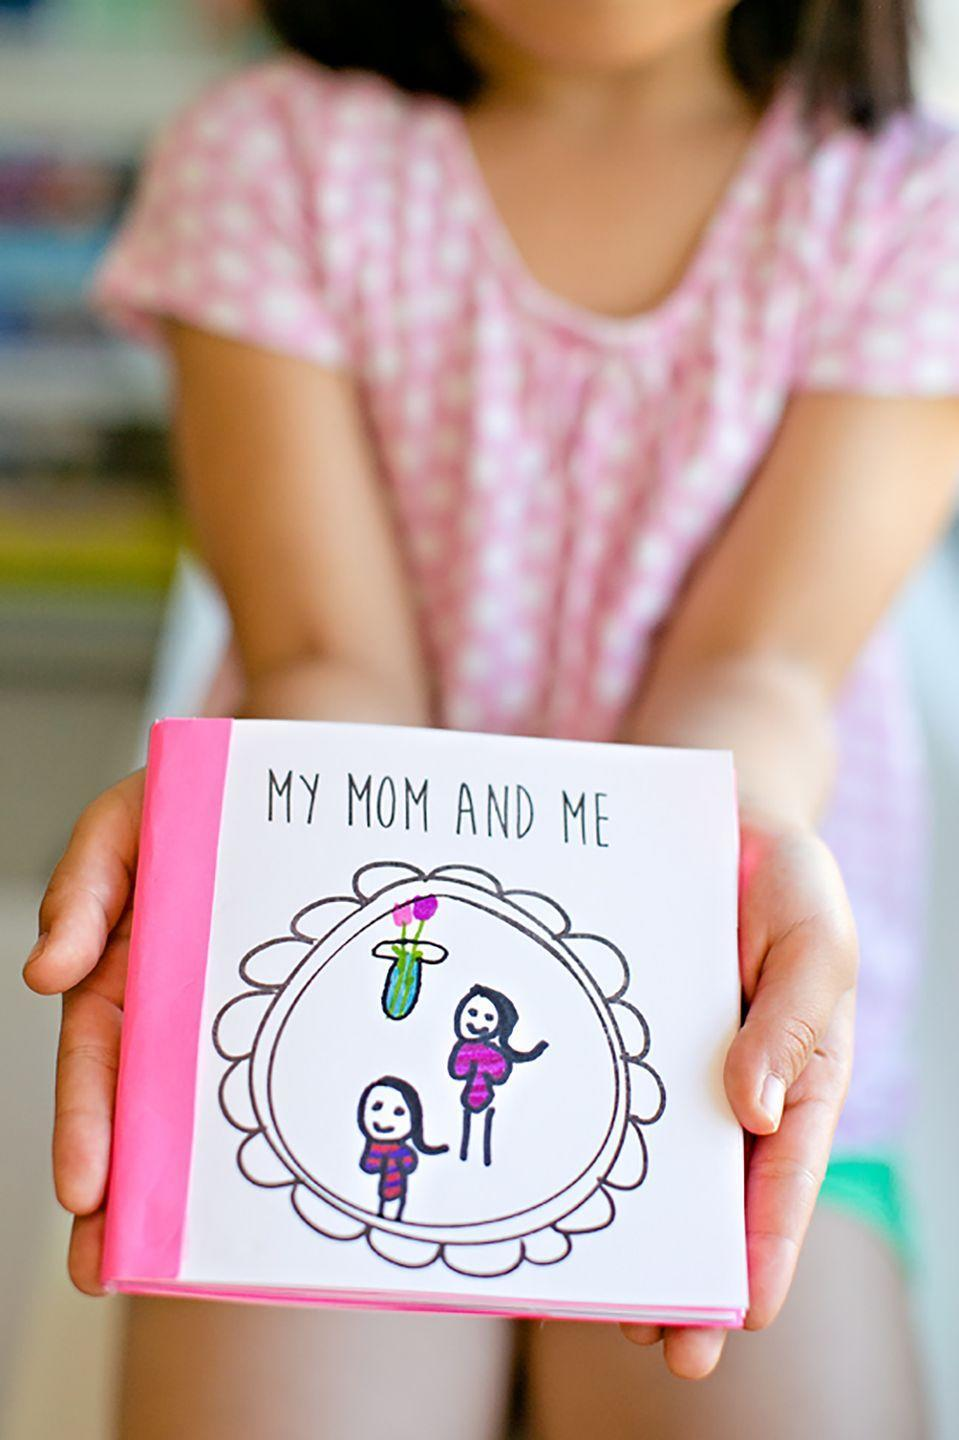 "<p>This precious book can be printed for free online, where you can choose 12 blank frames and 10 prompts for your child to fill out. He or she will complete sentences like, ""My favorite memory of Mom is..."" or ""My mom makes me feel..."" and illustrate the book with drawings throughout. The end result: a truly priceless Mother's Day gift.</p><p><strong>Get the tutorial at <a href=""http://www.hellowonderful.co/post/KID-MADE-FREE-PRINTABLE-MOTHER----S-DAY-BOOK"" rel=""nofollow noopener"" target=""_blank"" data-ylk=""slk:Hello, Wonderful"" class=""link rapid-noclick-resp"">Hello, Wonderful</a>. </strong></p>"